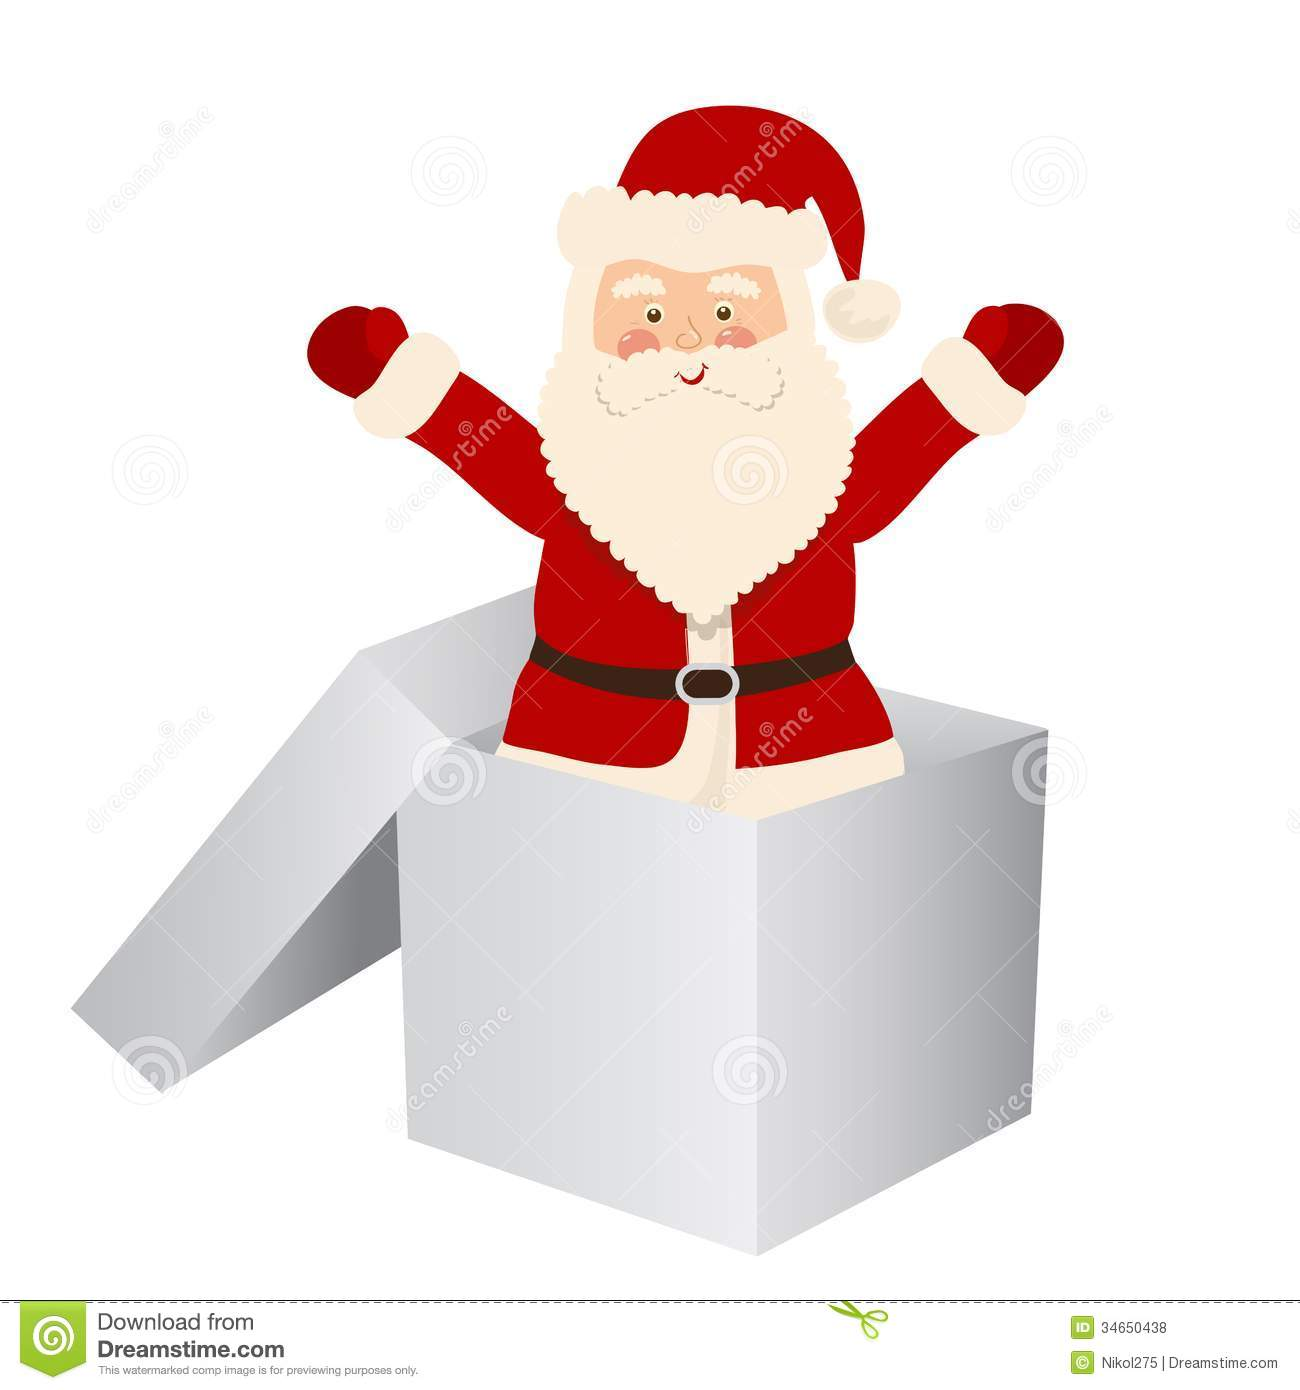 Santa claus jumps out of the white box stock vector